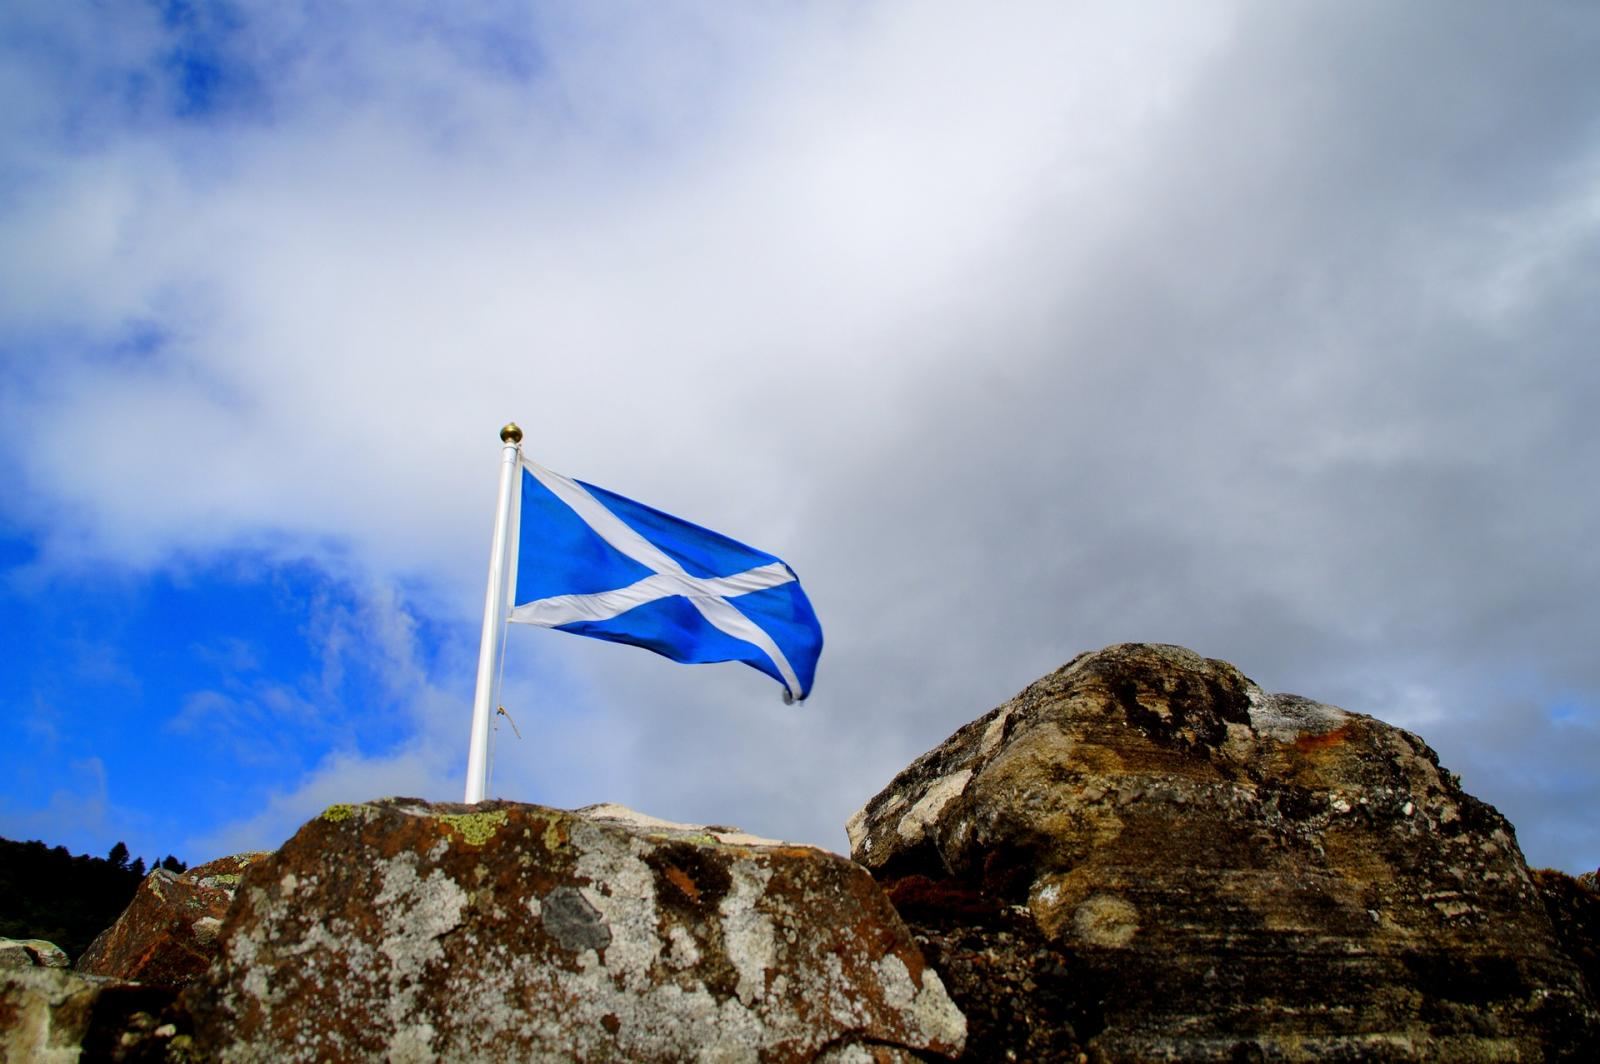 Scotland flag flying at Loch Ness. Photo credit: Pixabay